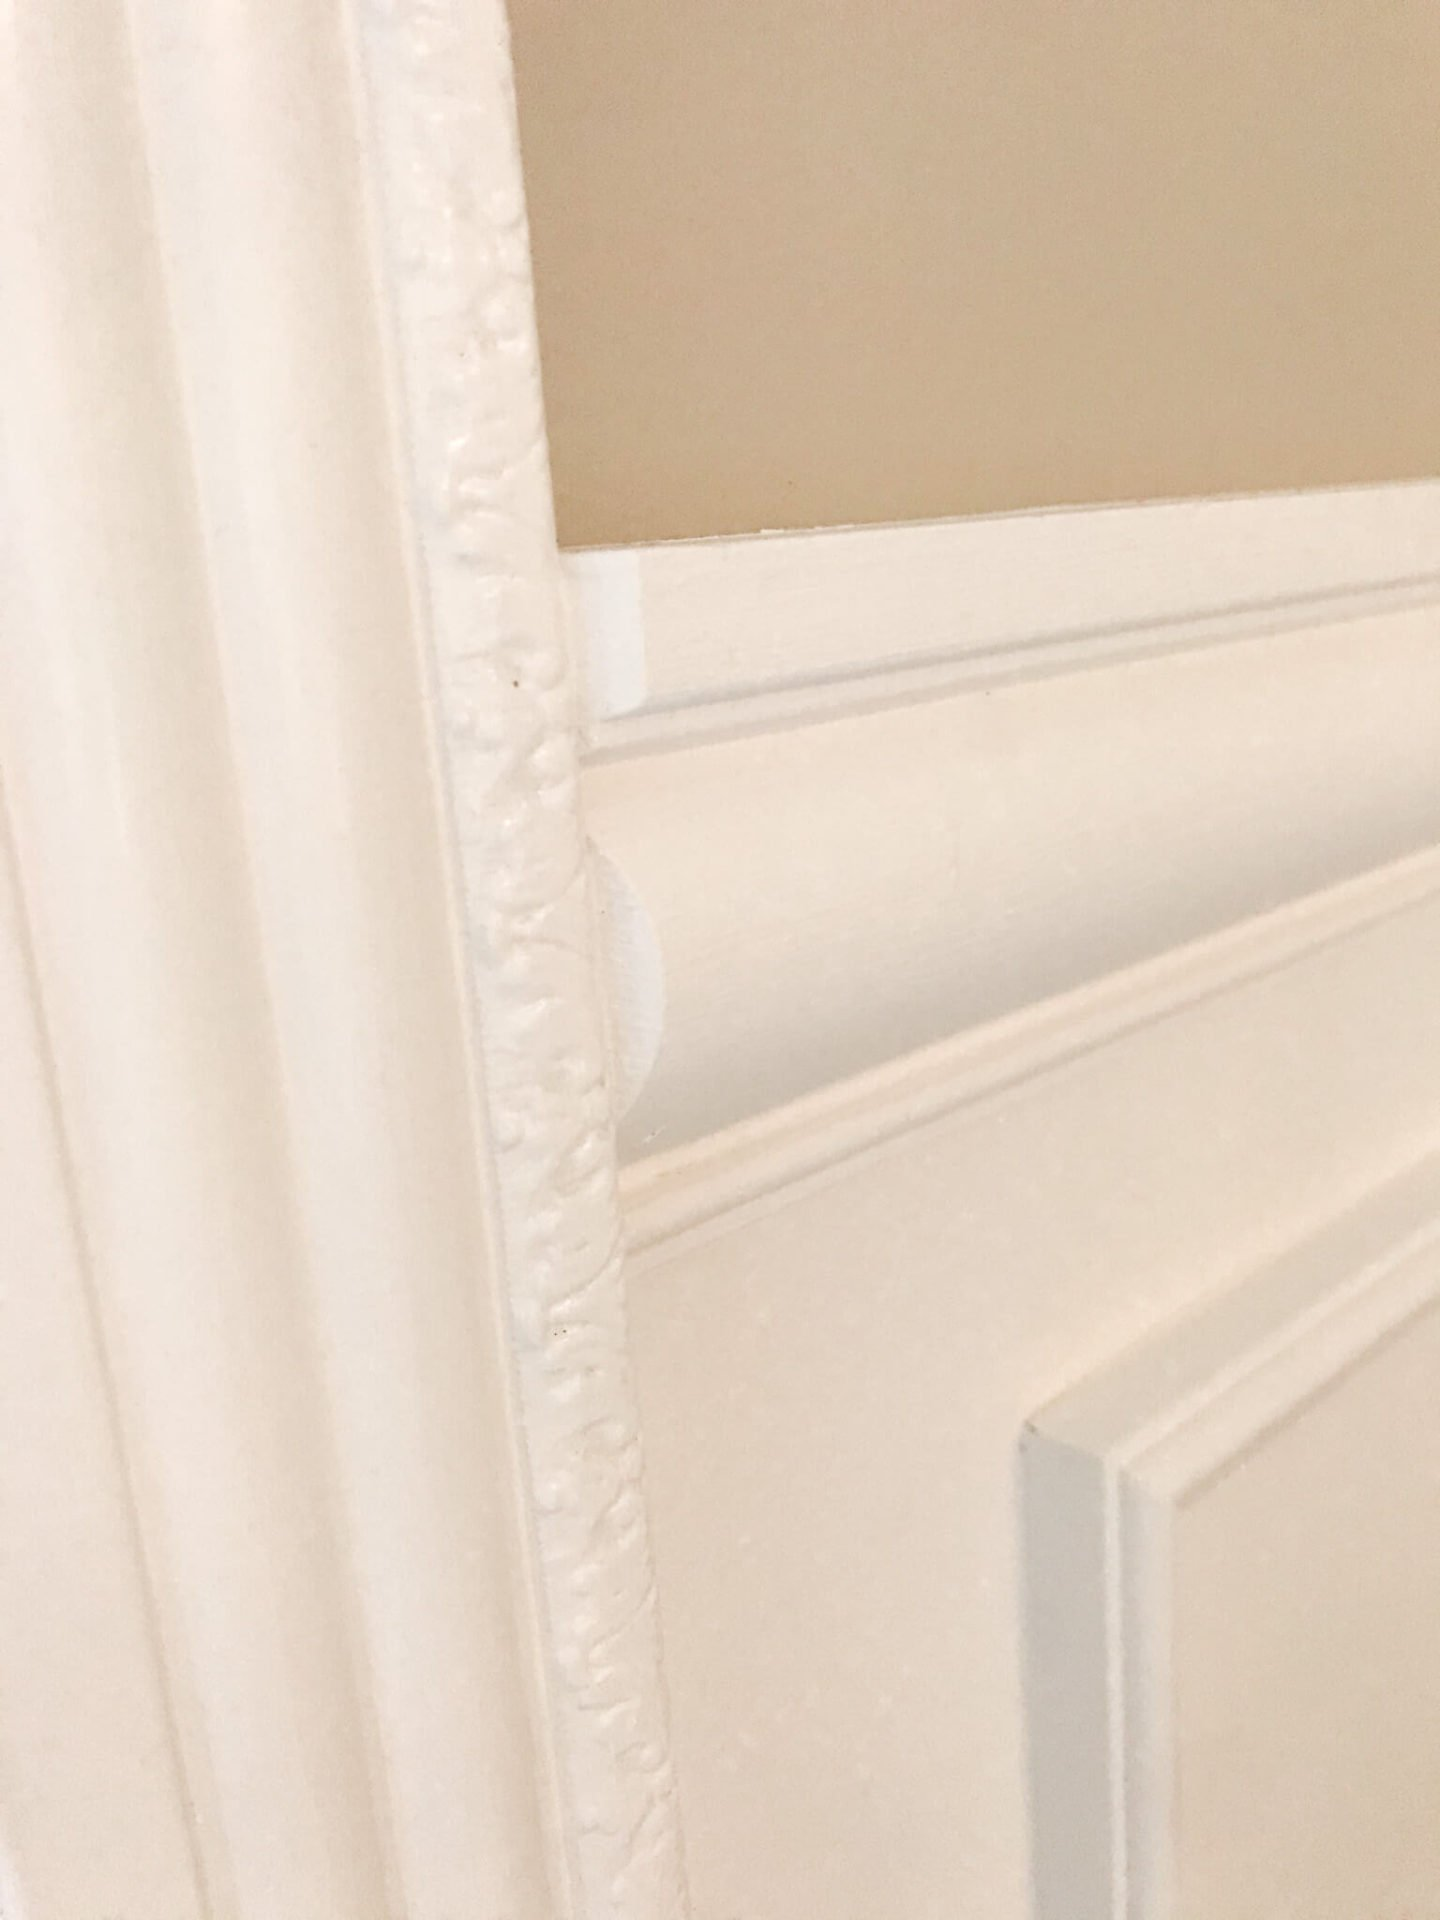 Beveled edge of chair rail installed against the window trim